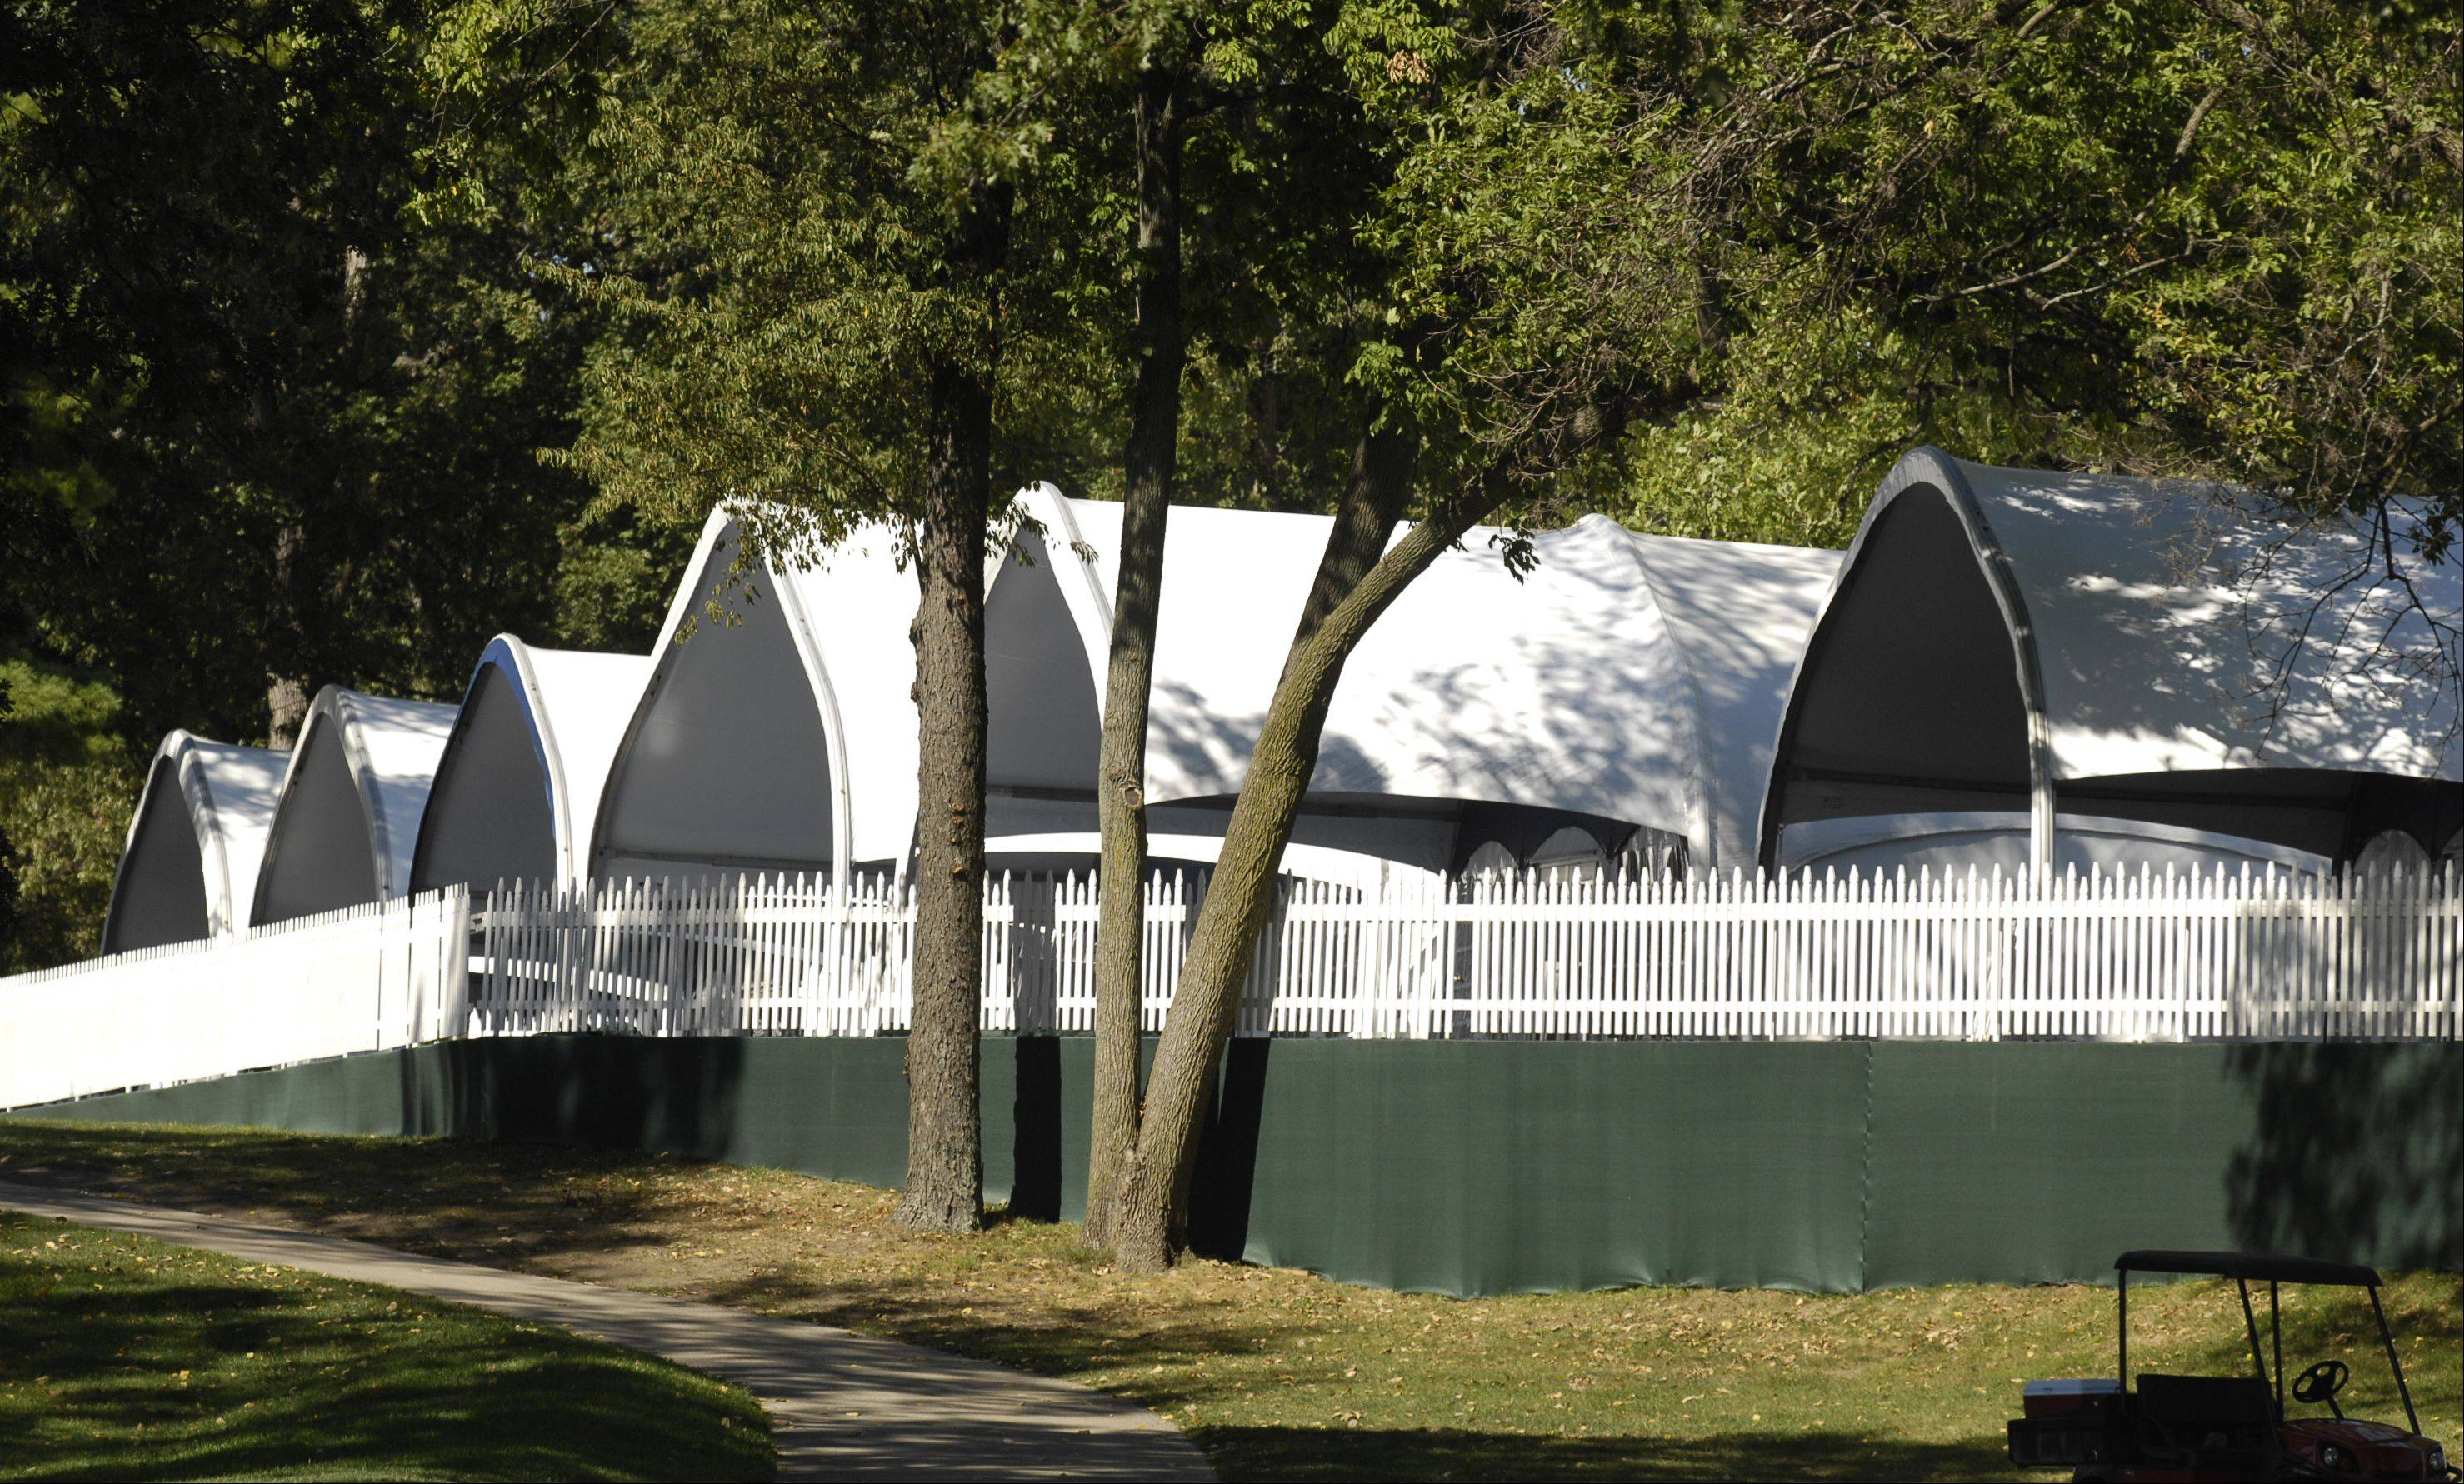 Ryder Cup corporate chalets at Medinah range in size from 50- to 300-guest tents.